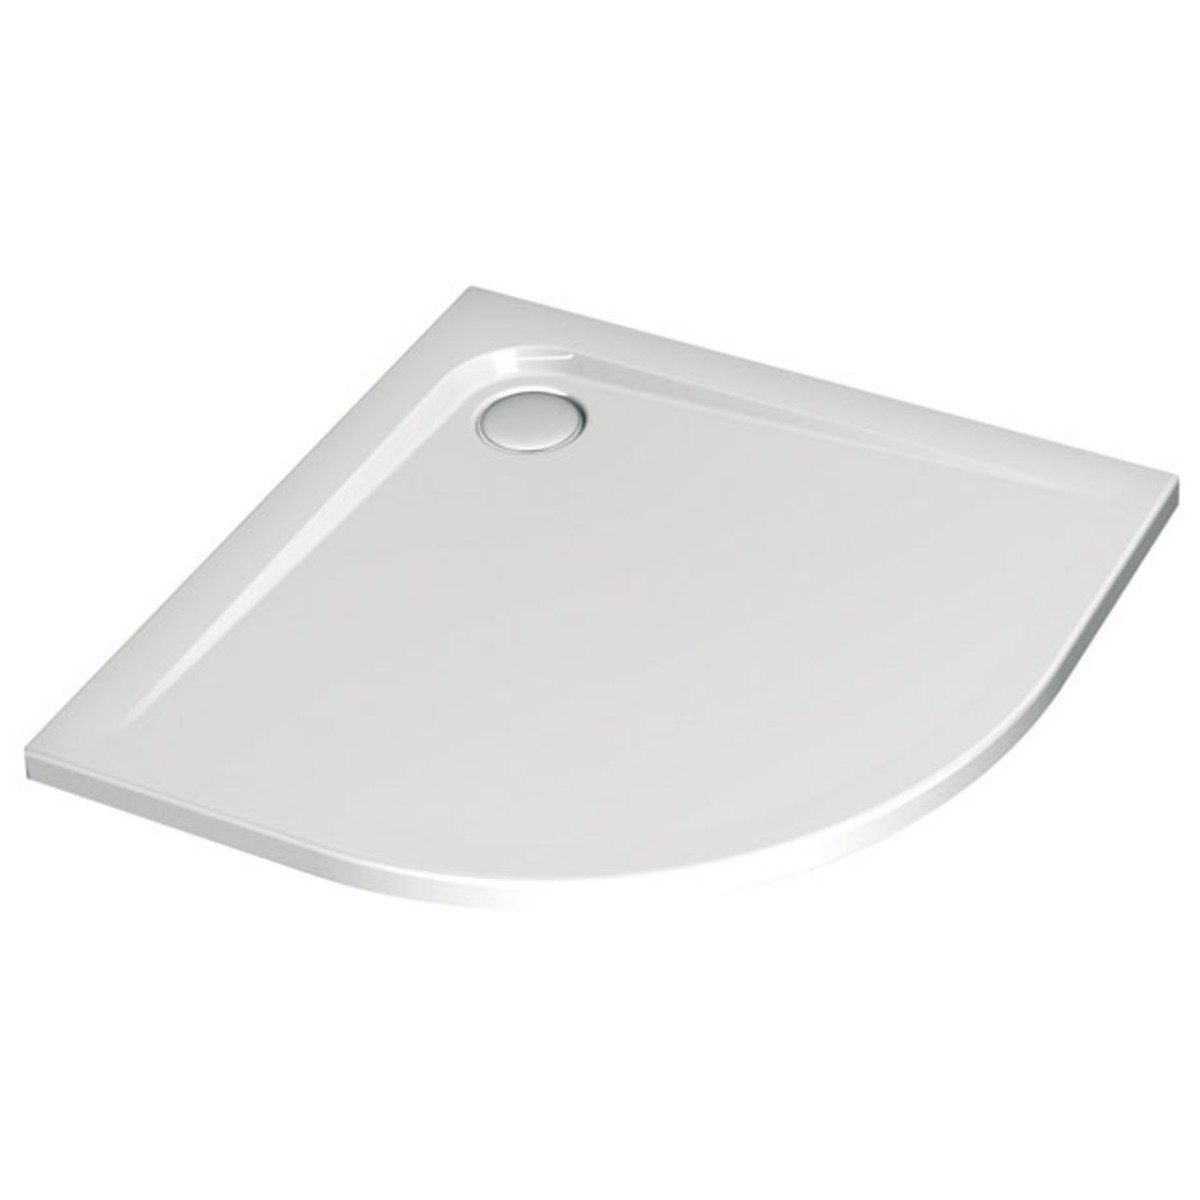 Ideal Standard Ultra Flat Receveur De Douche 90x90x4 7cm Rayon 55mm